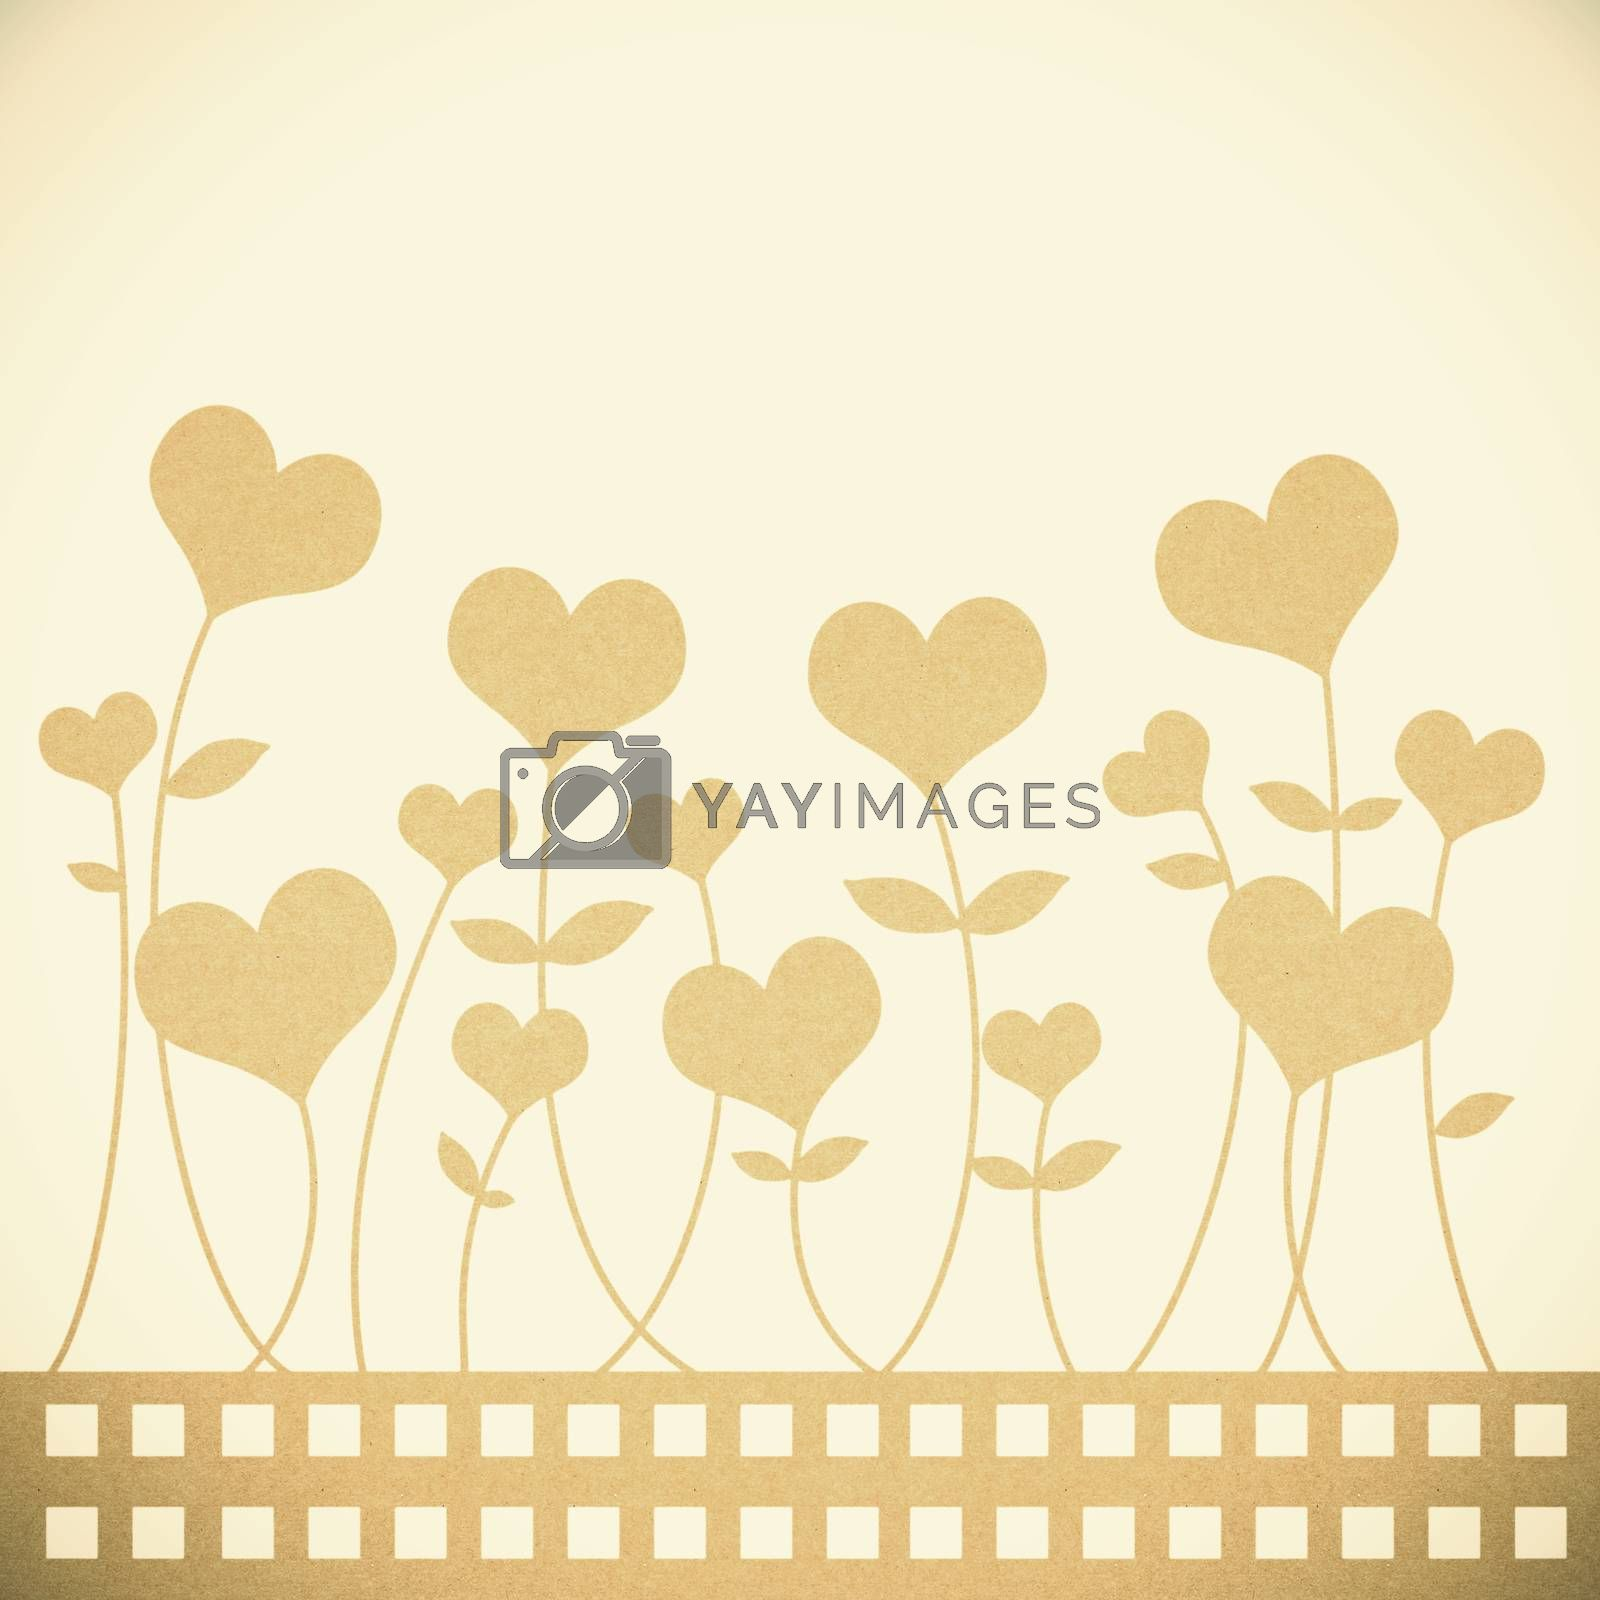 Old Recycle paper valentine flower background for romance, weddi by jakgree